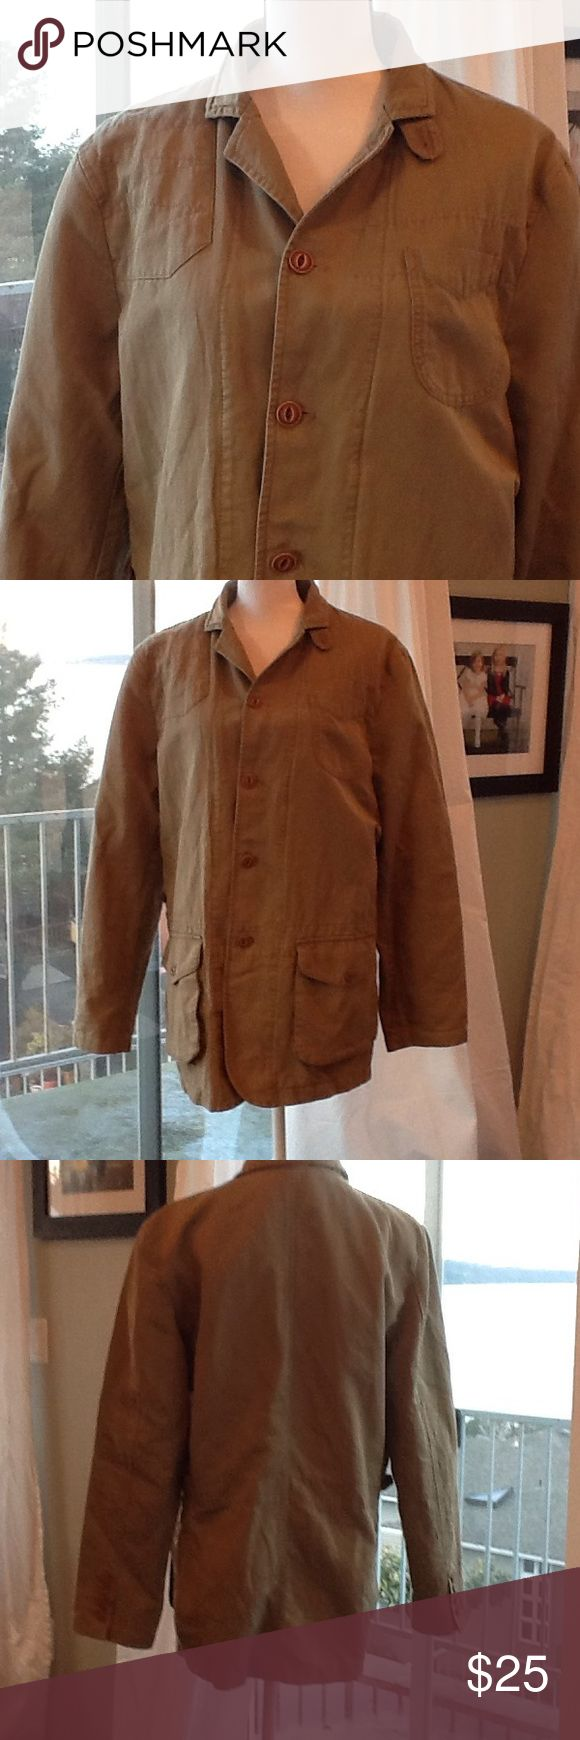 Men's jacket ... Great lady's boyfriend jacket 55% linen, 45% cotton; sleeve lining is 100% polyester. Machine wash warm. Used condition with normal wear. Daniel Cremieux Jackets & Coats Military & Field